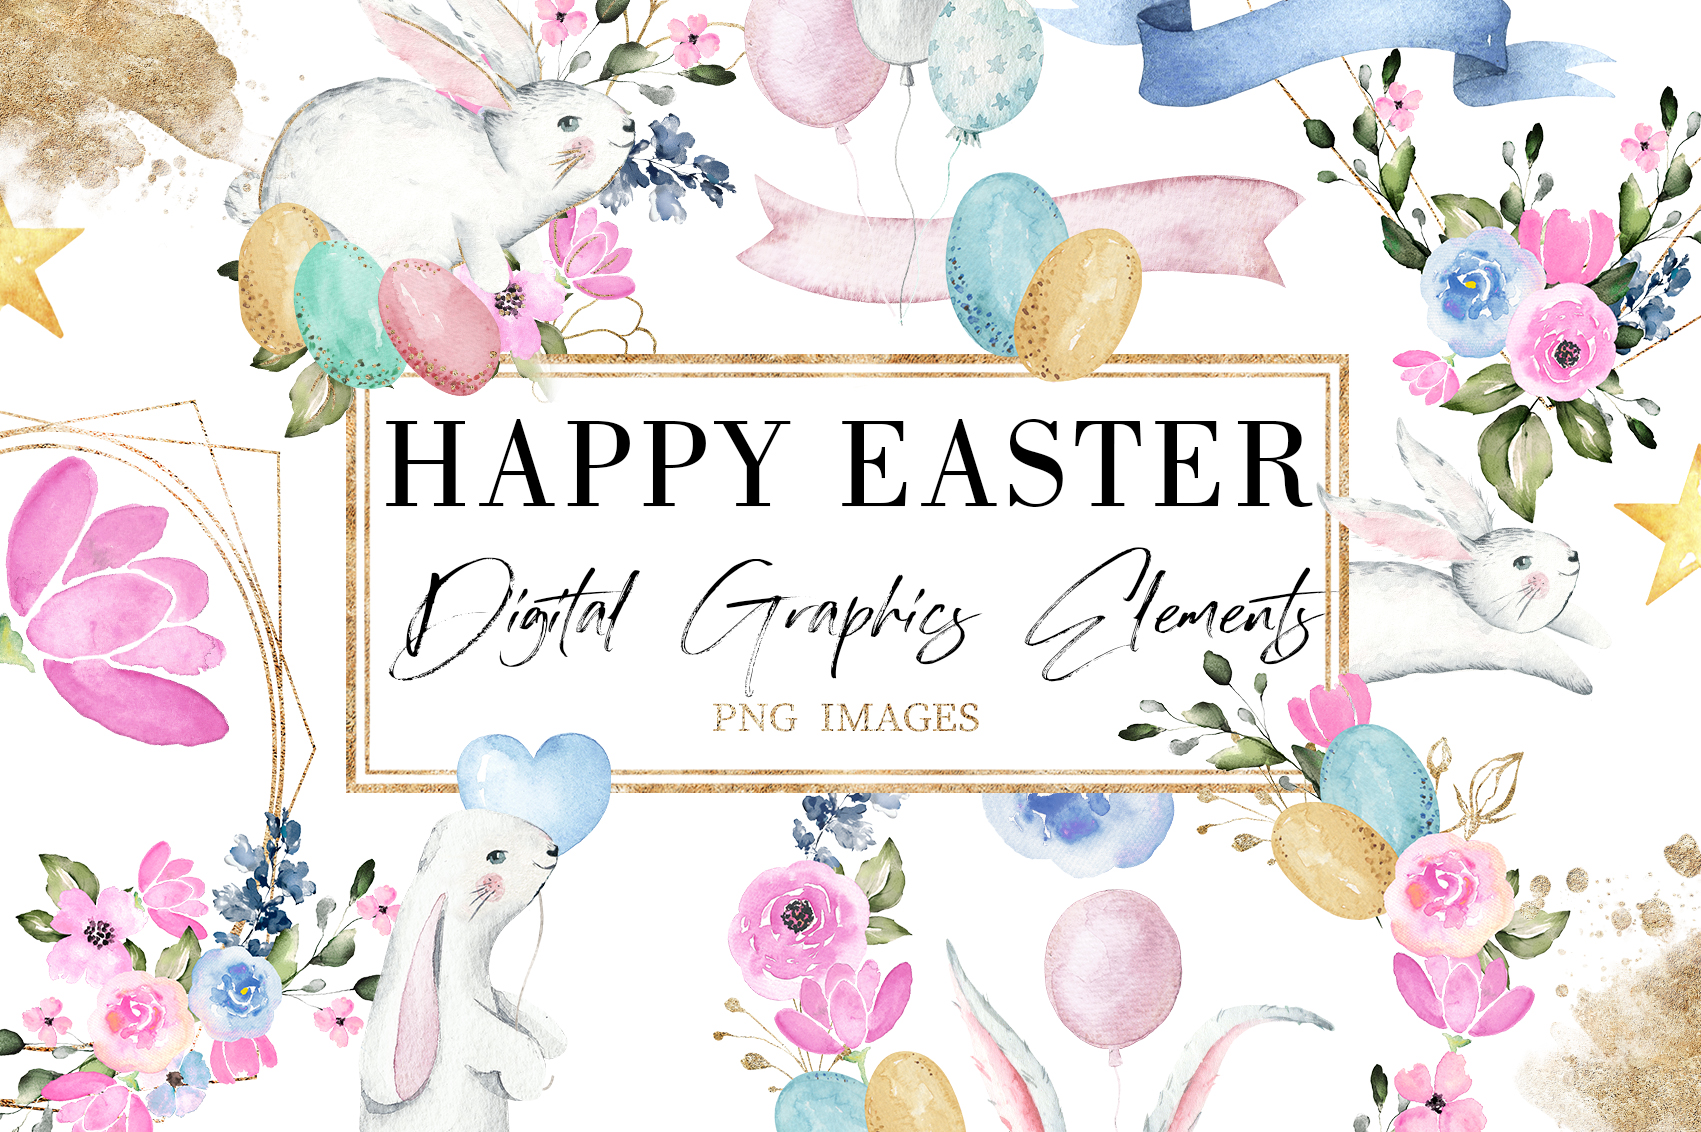 Happy Easter|Watercolor Elements clipArt example image 1